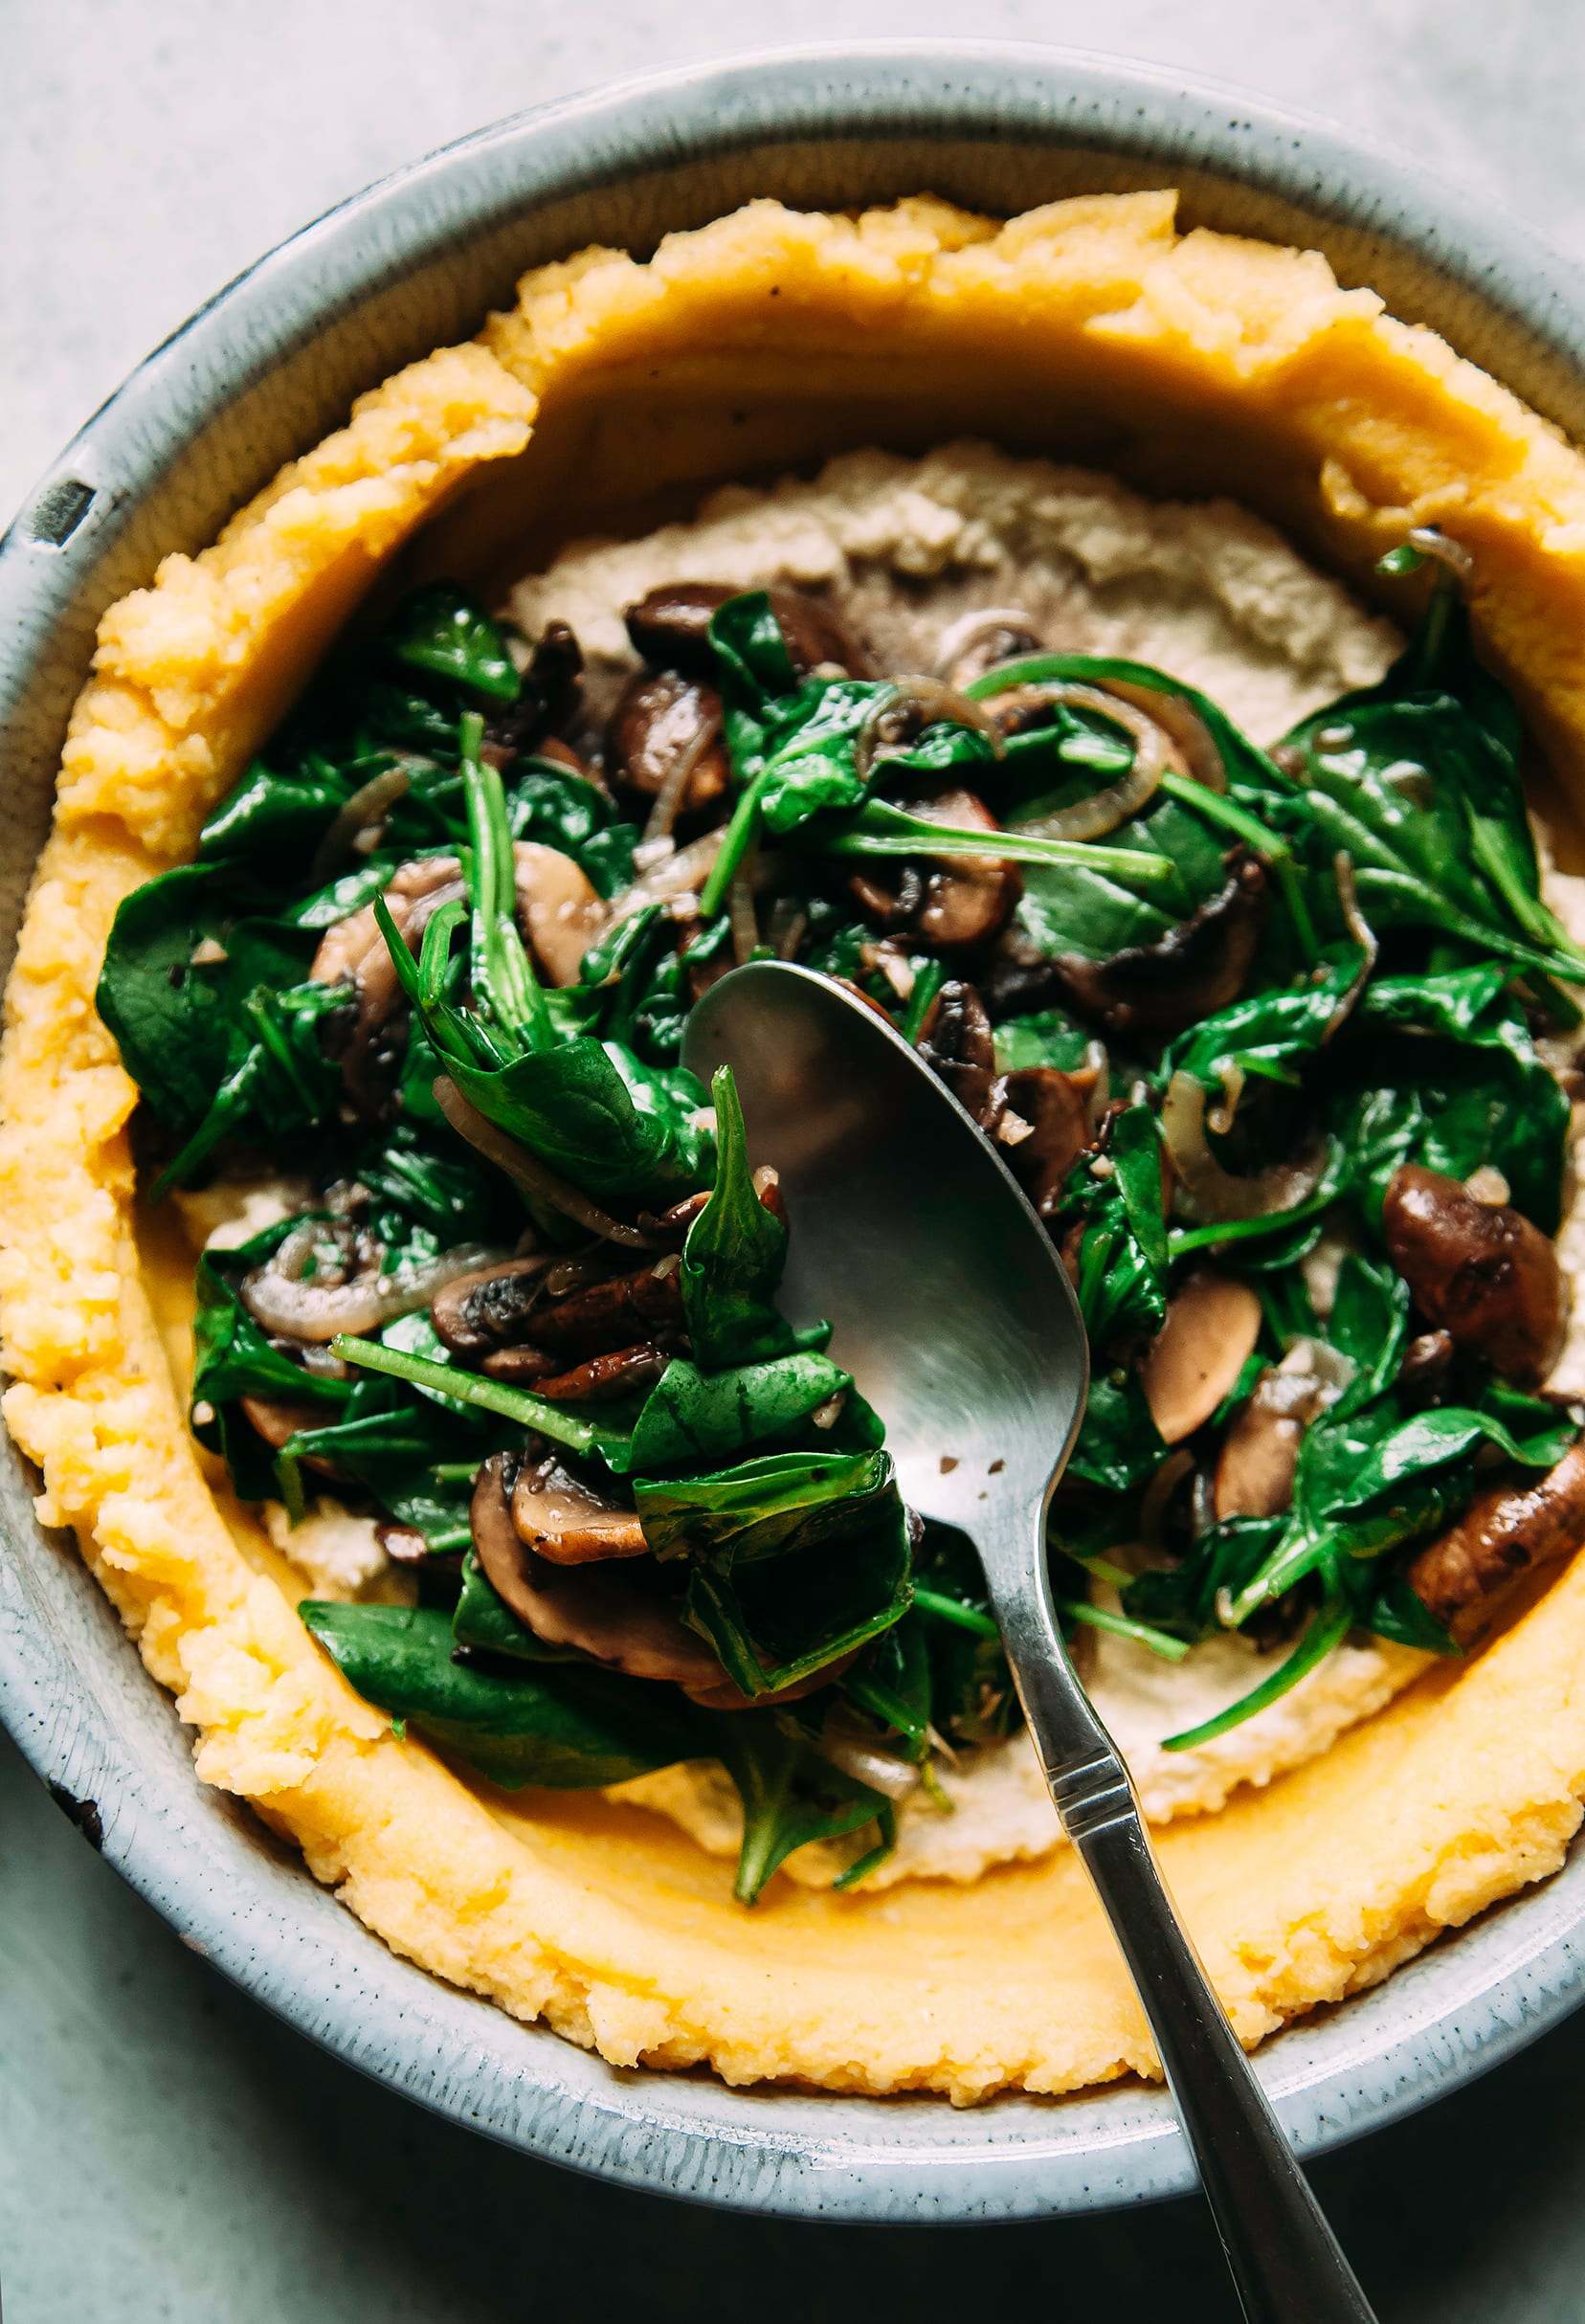 Image shows a spoon transferring a spinach and mushroom filling to a yellow polenta-based crust.